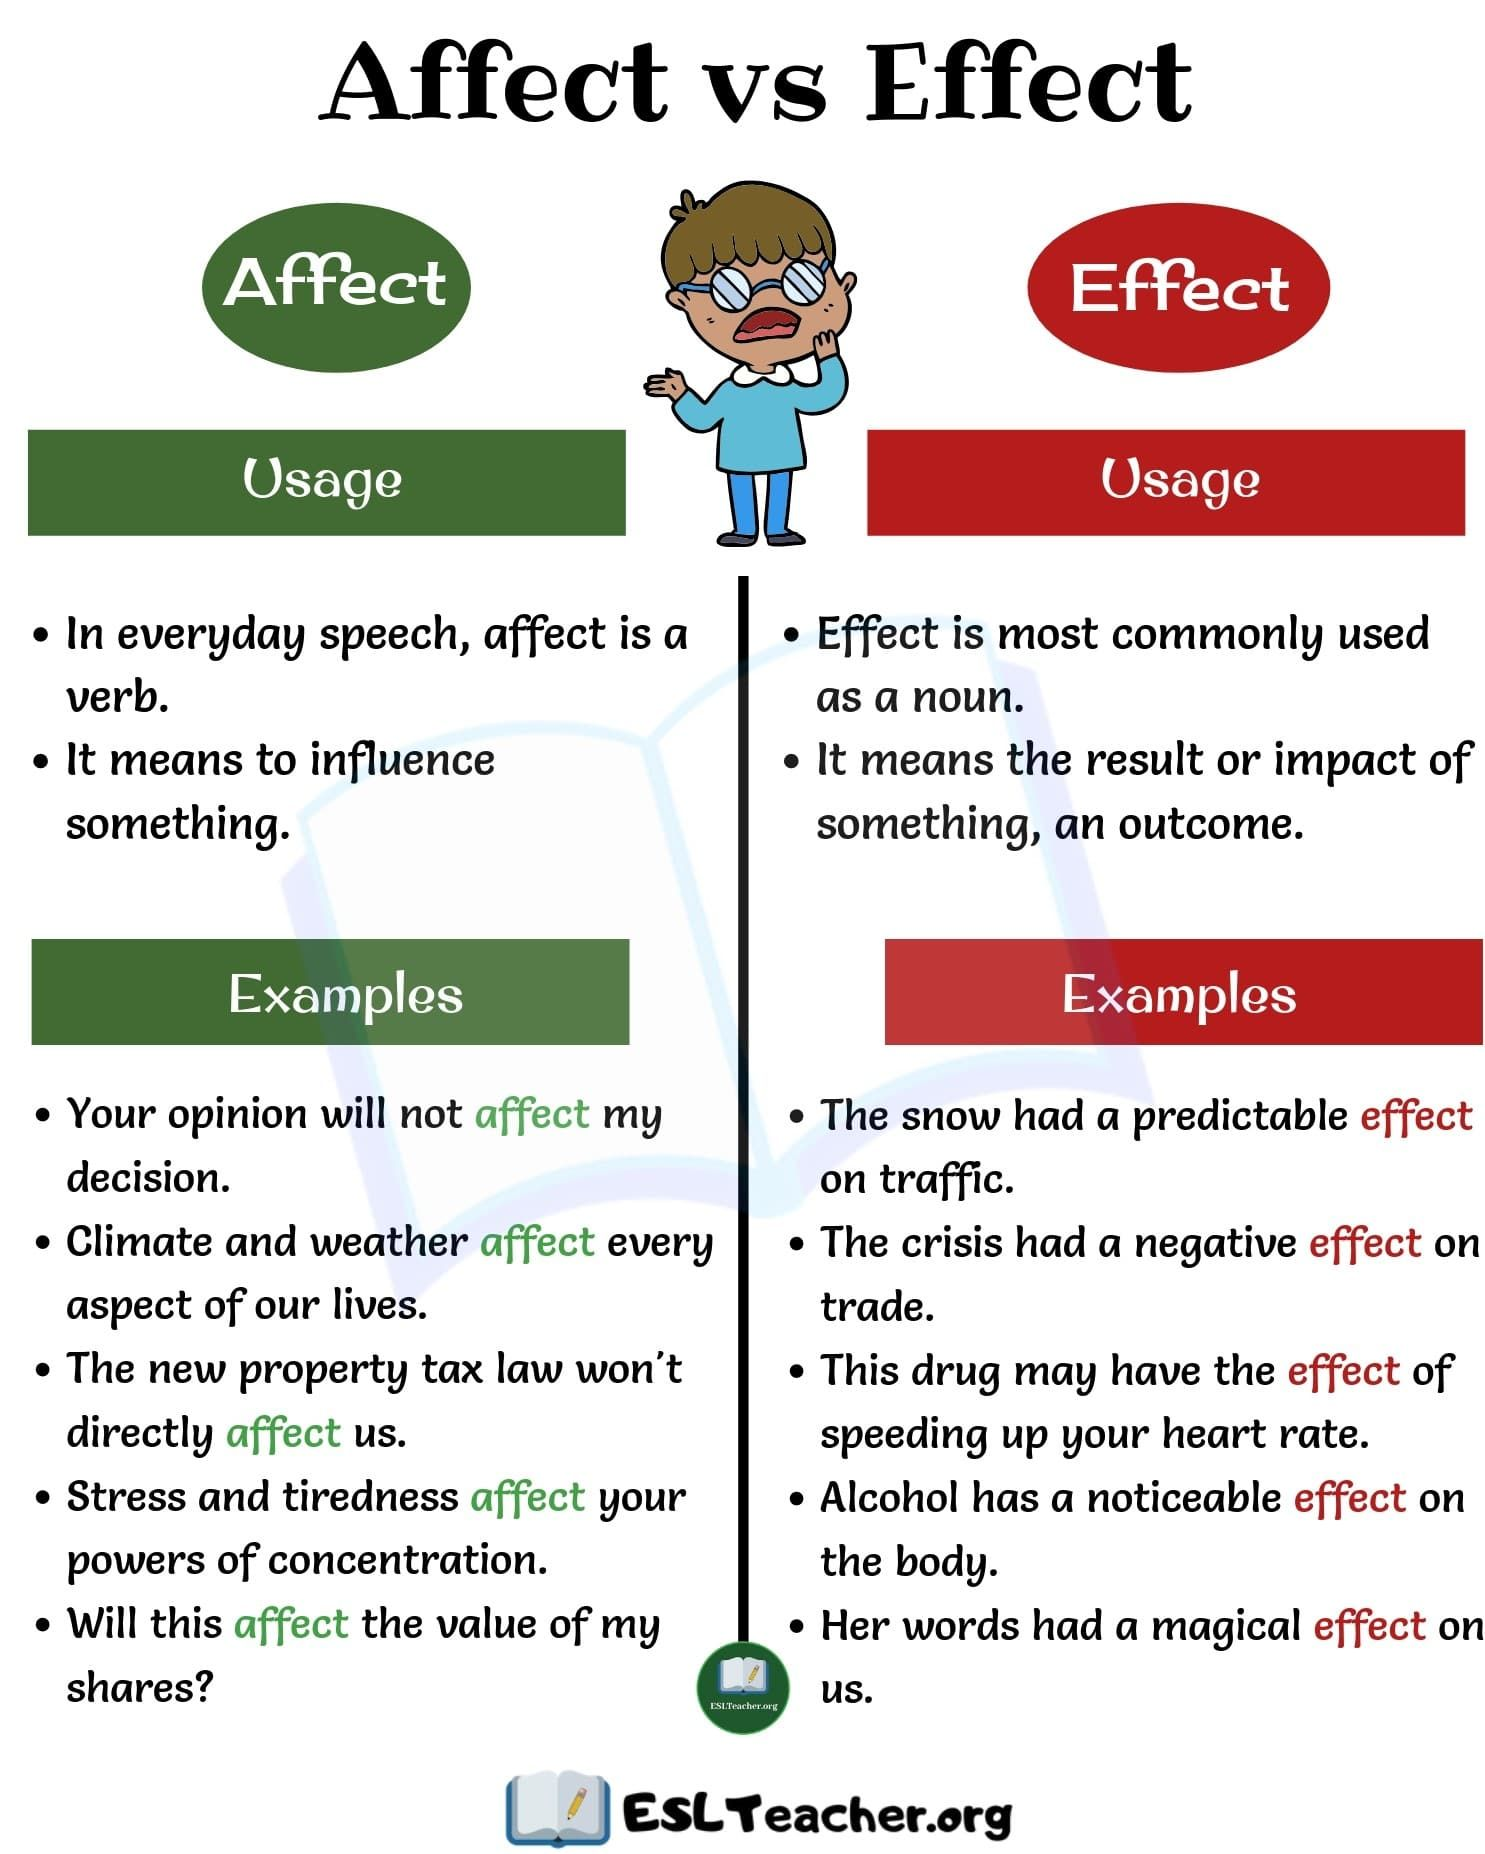 hight resolution of Affect vs Effect: How to Use Effect vs Affect Correctly - ESL Teacher    Word skills